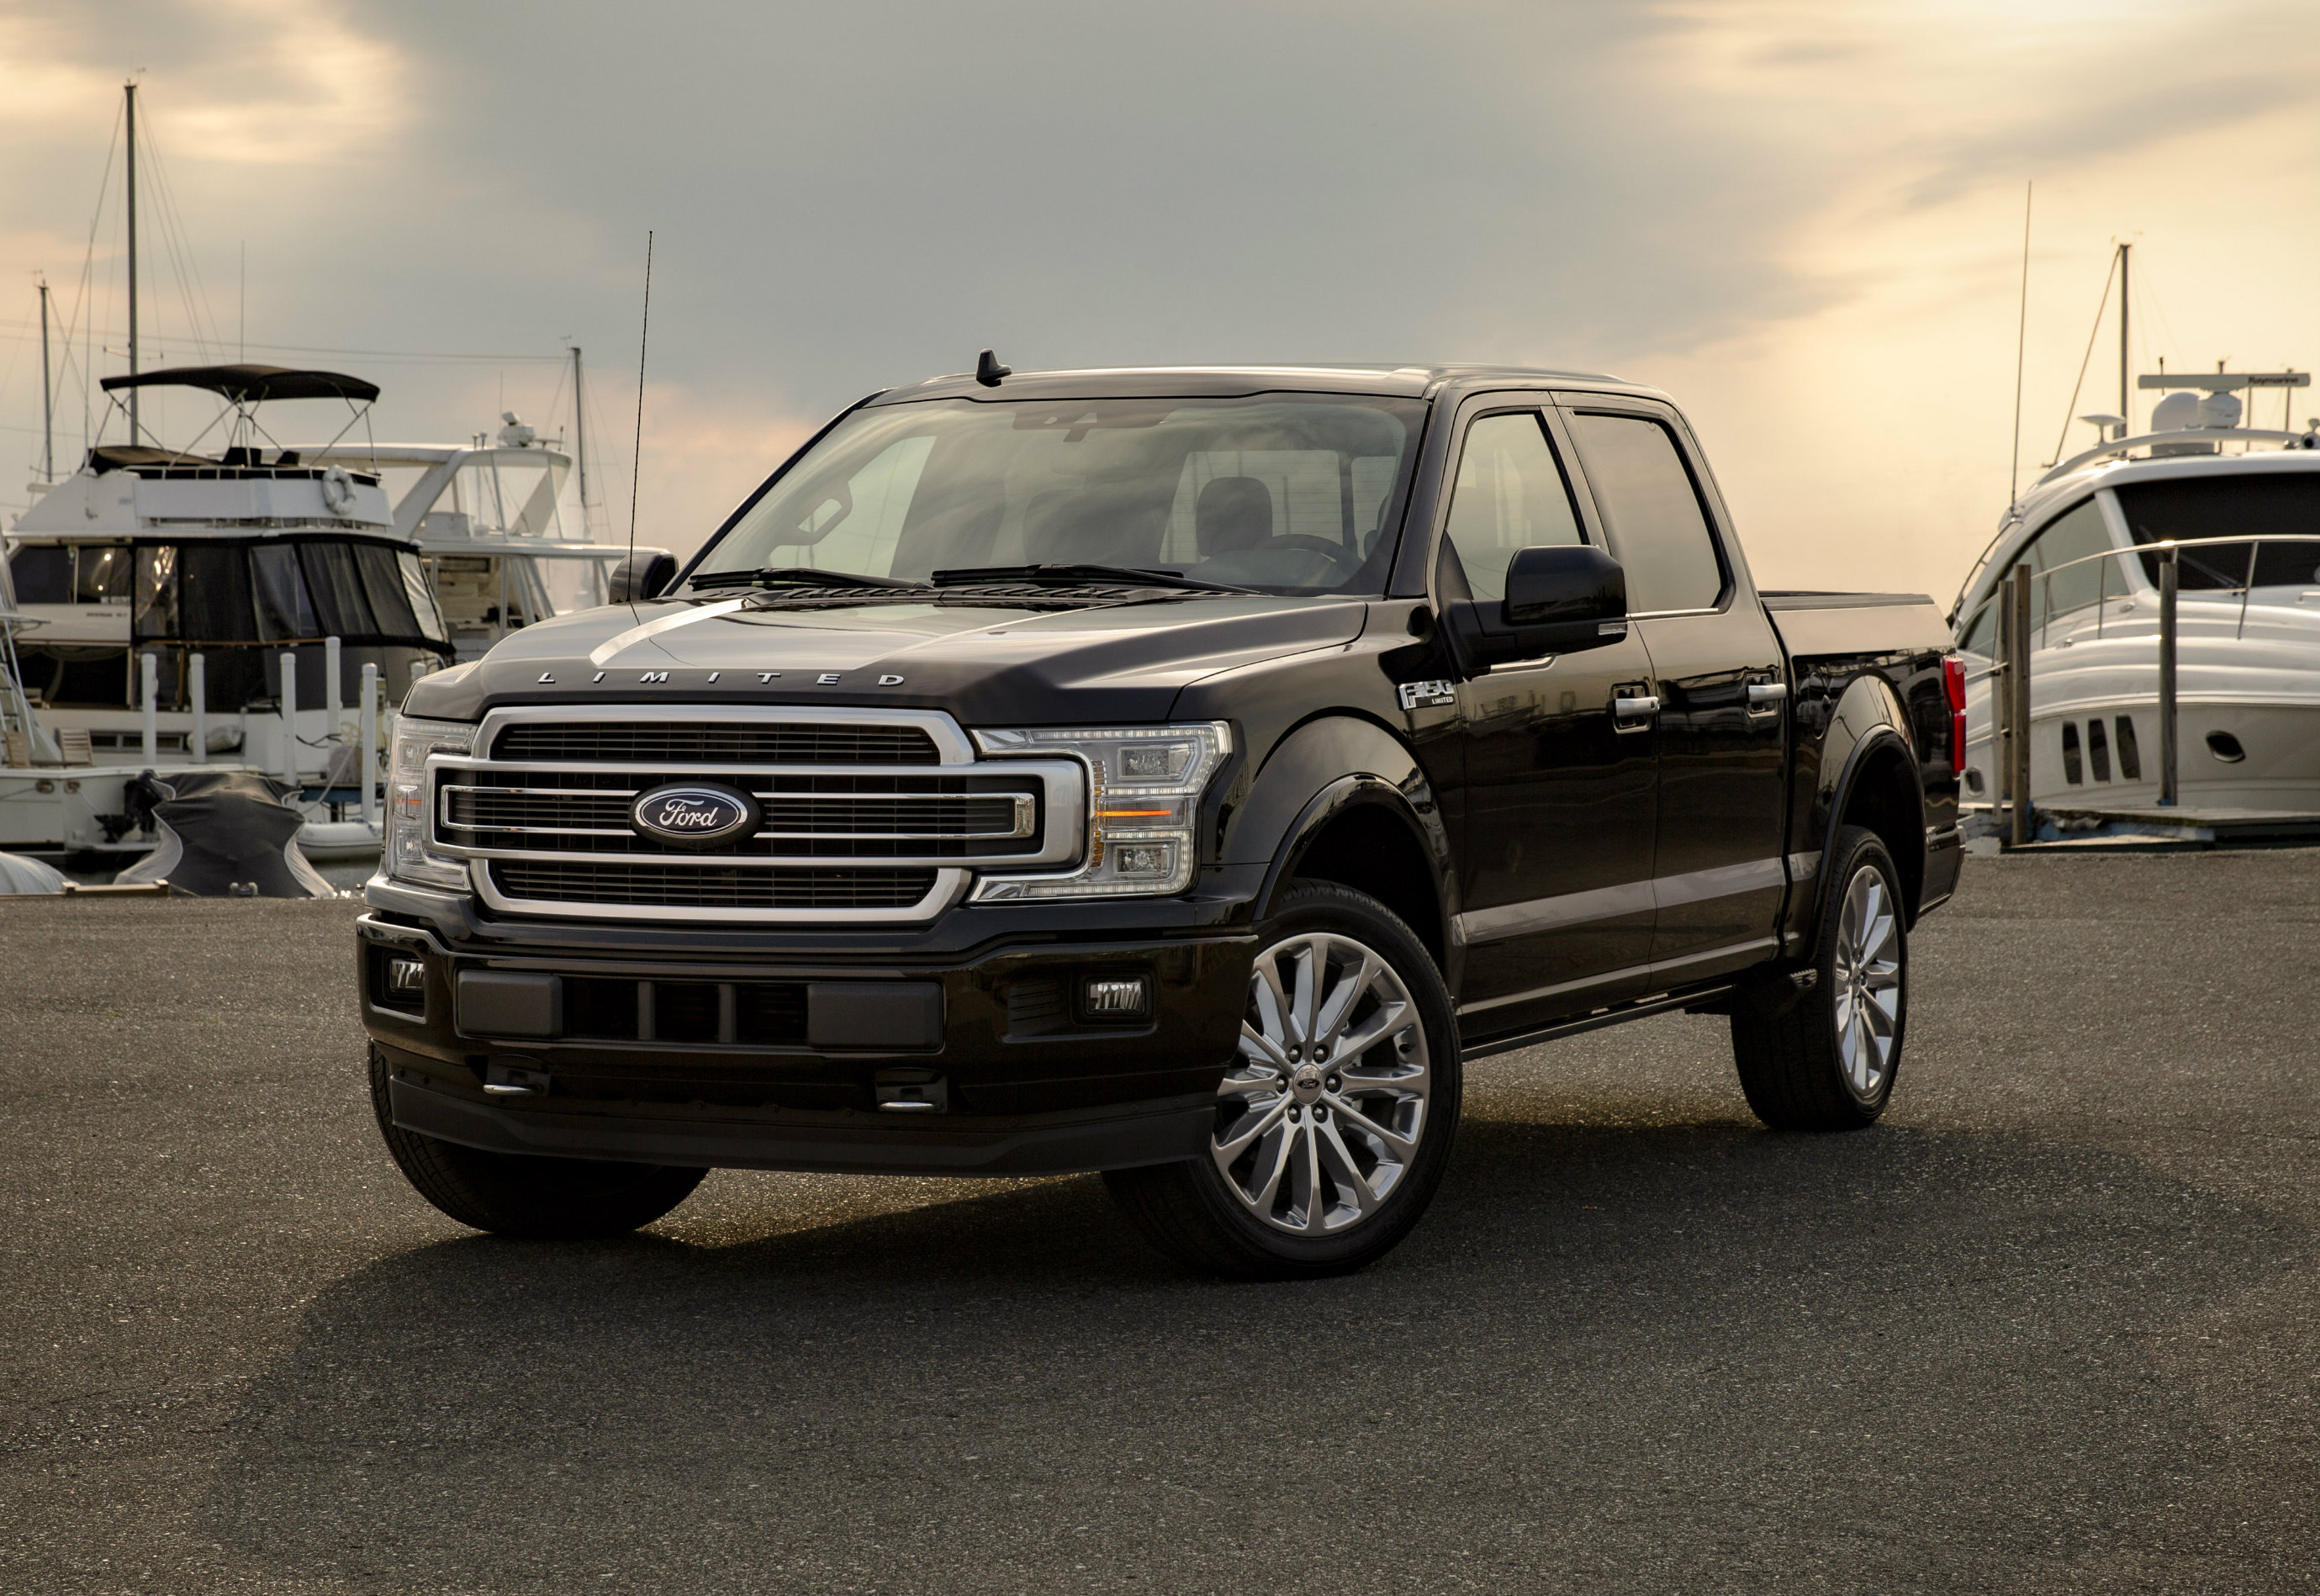 Rated at 450 horsepower and 691Nm of torque, the new Ford F-150 Limited leads the competition, offering more power than any light-duty pickup on the road in the USA.